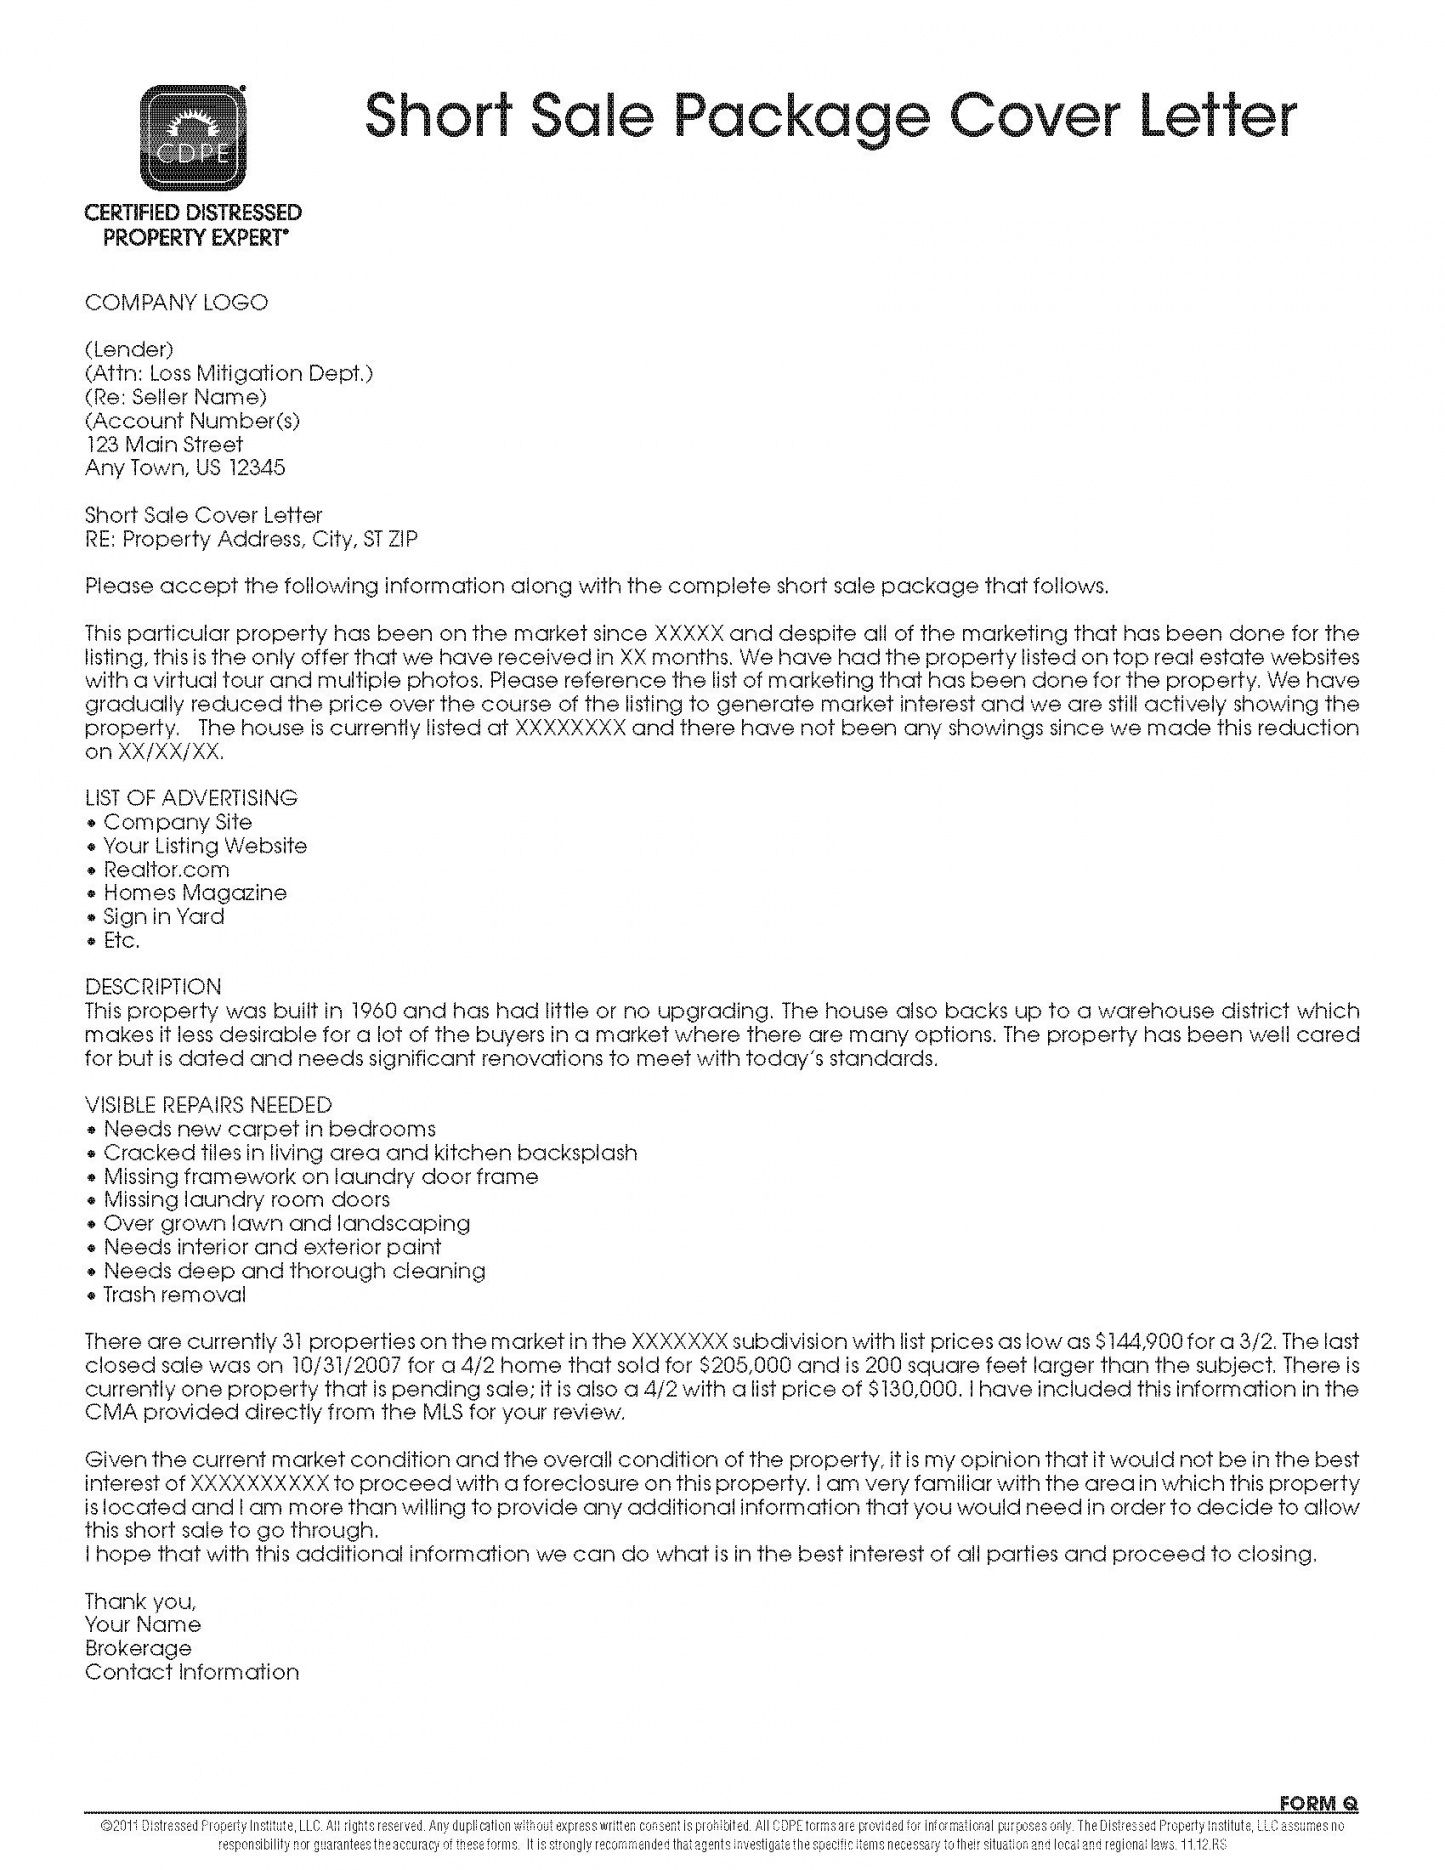 Pothole Claim Letter Template In 2020 Cover Letter Template